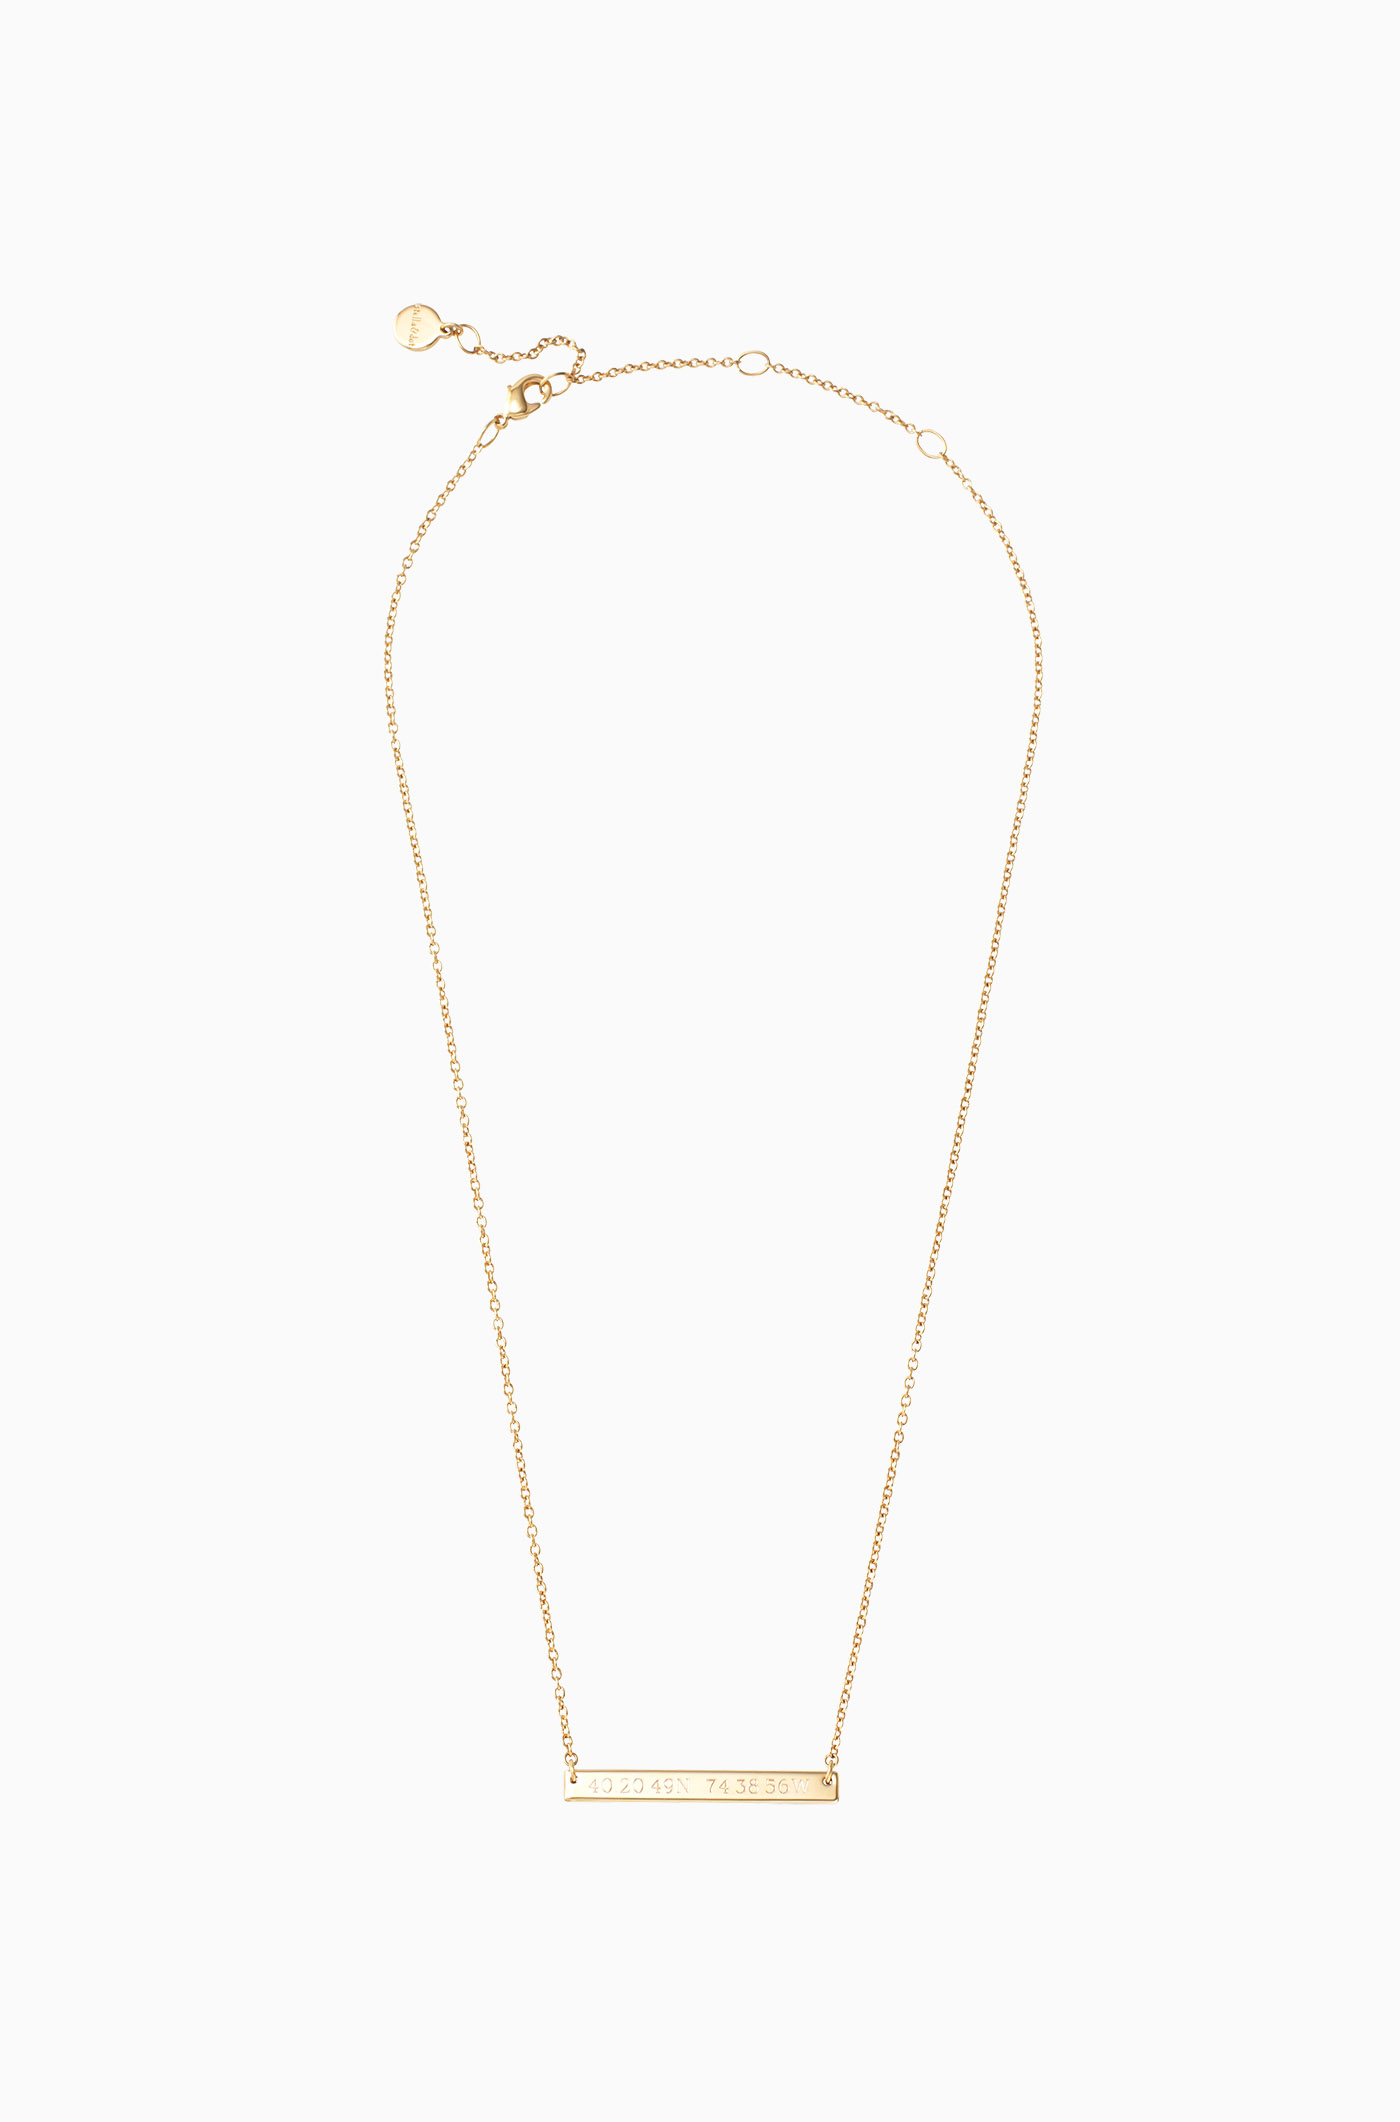 stelladot_necklace.jpg